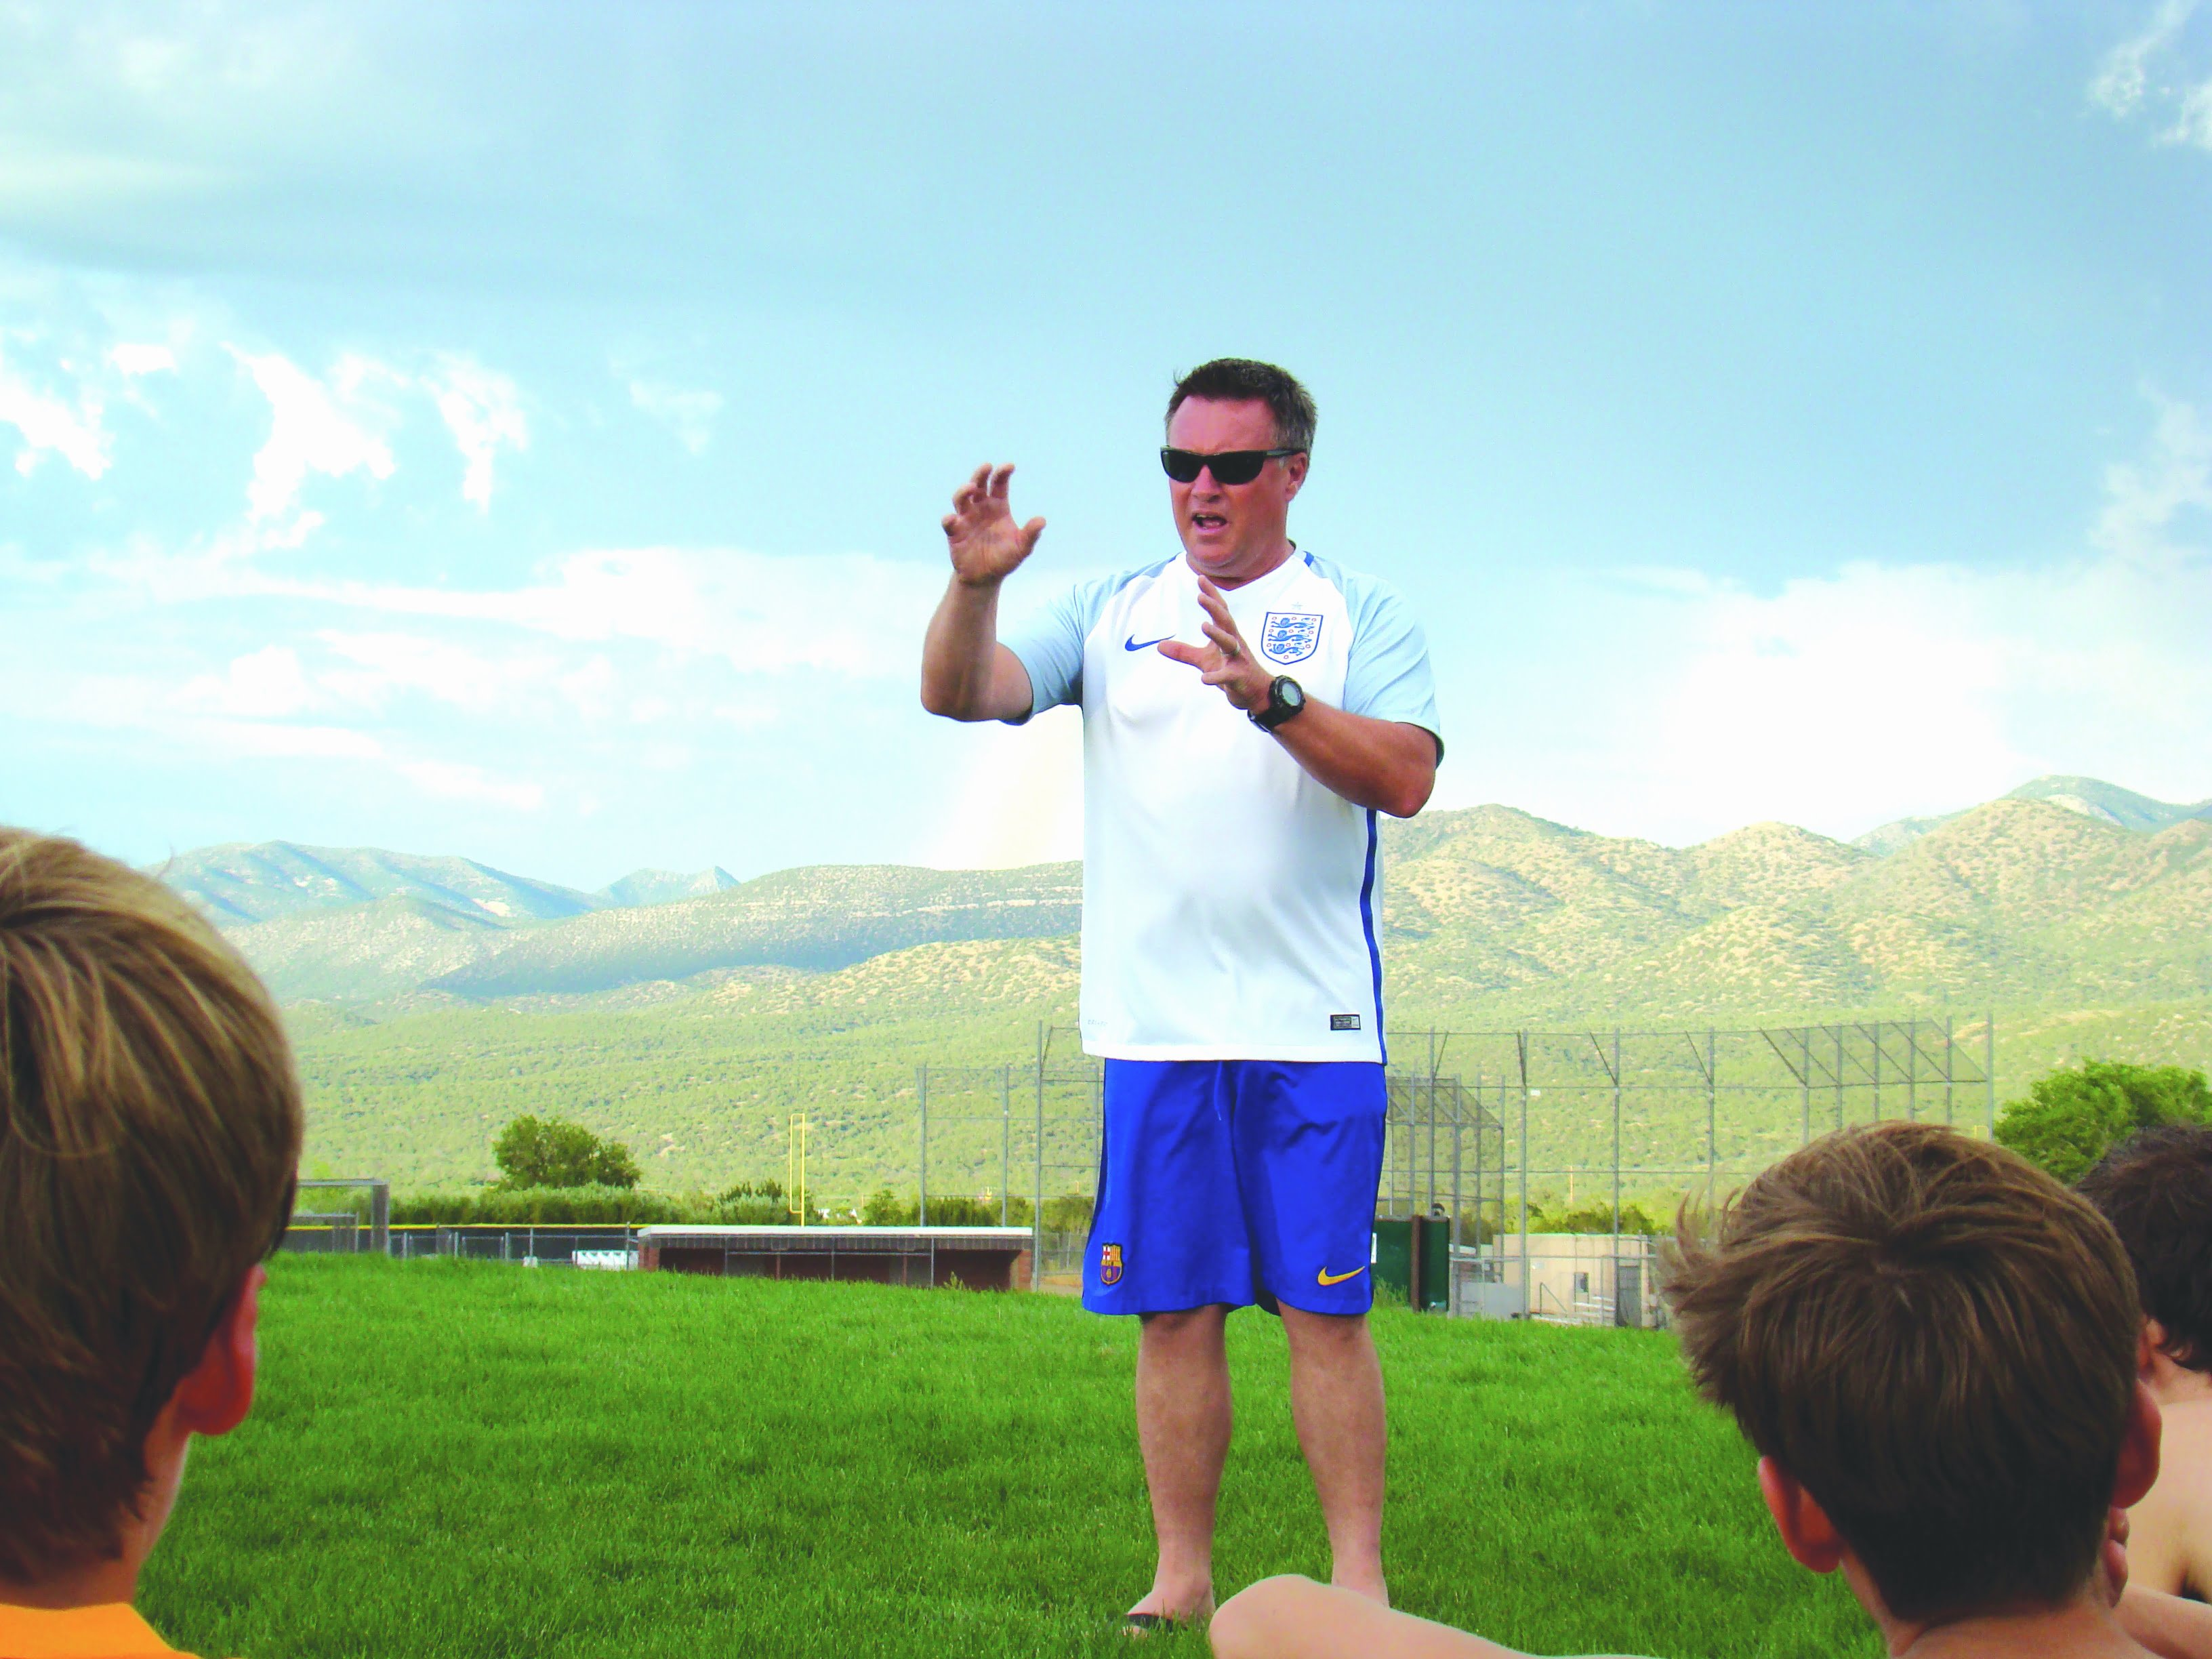 New coach, new 'team concept' for EMHS boys soccer program